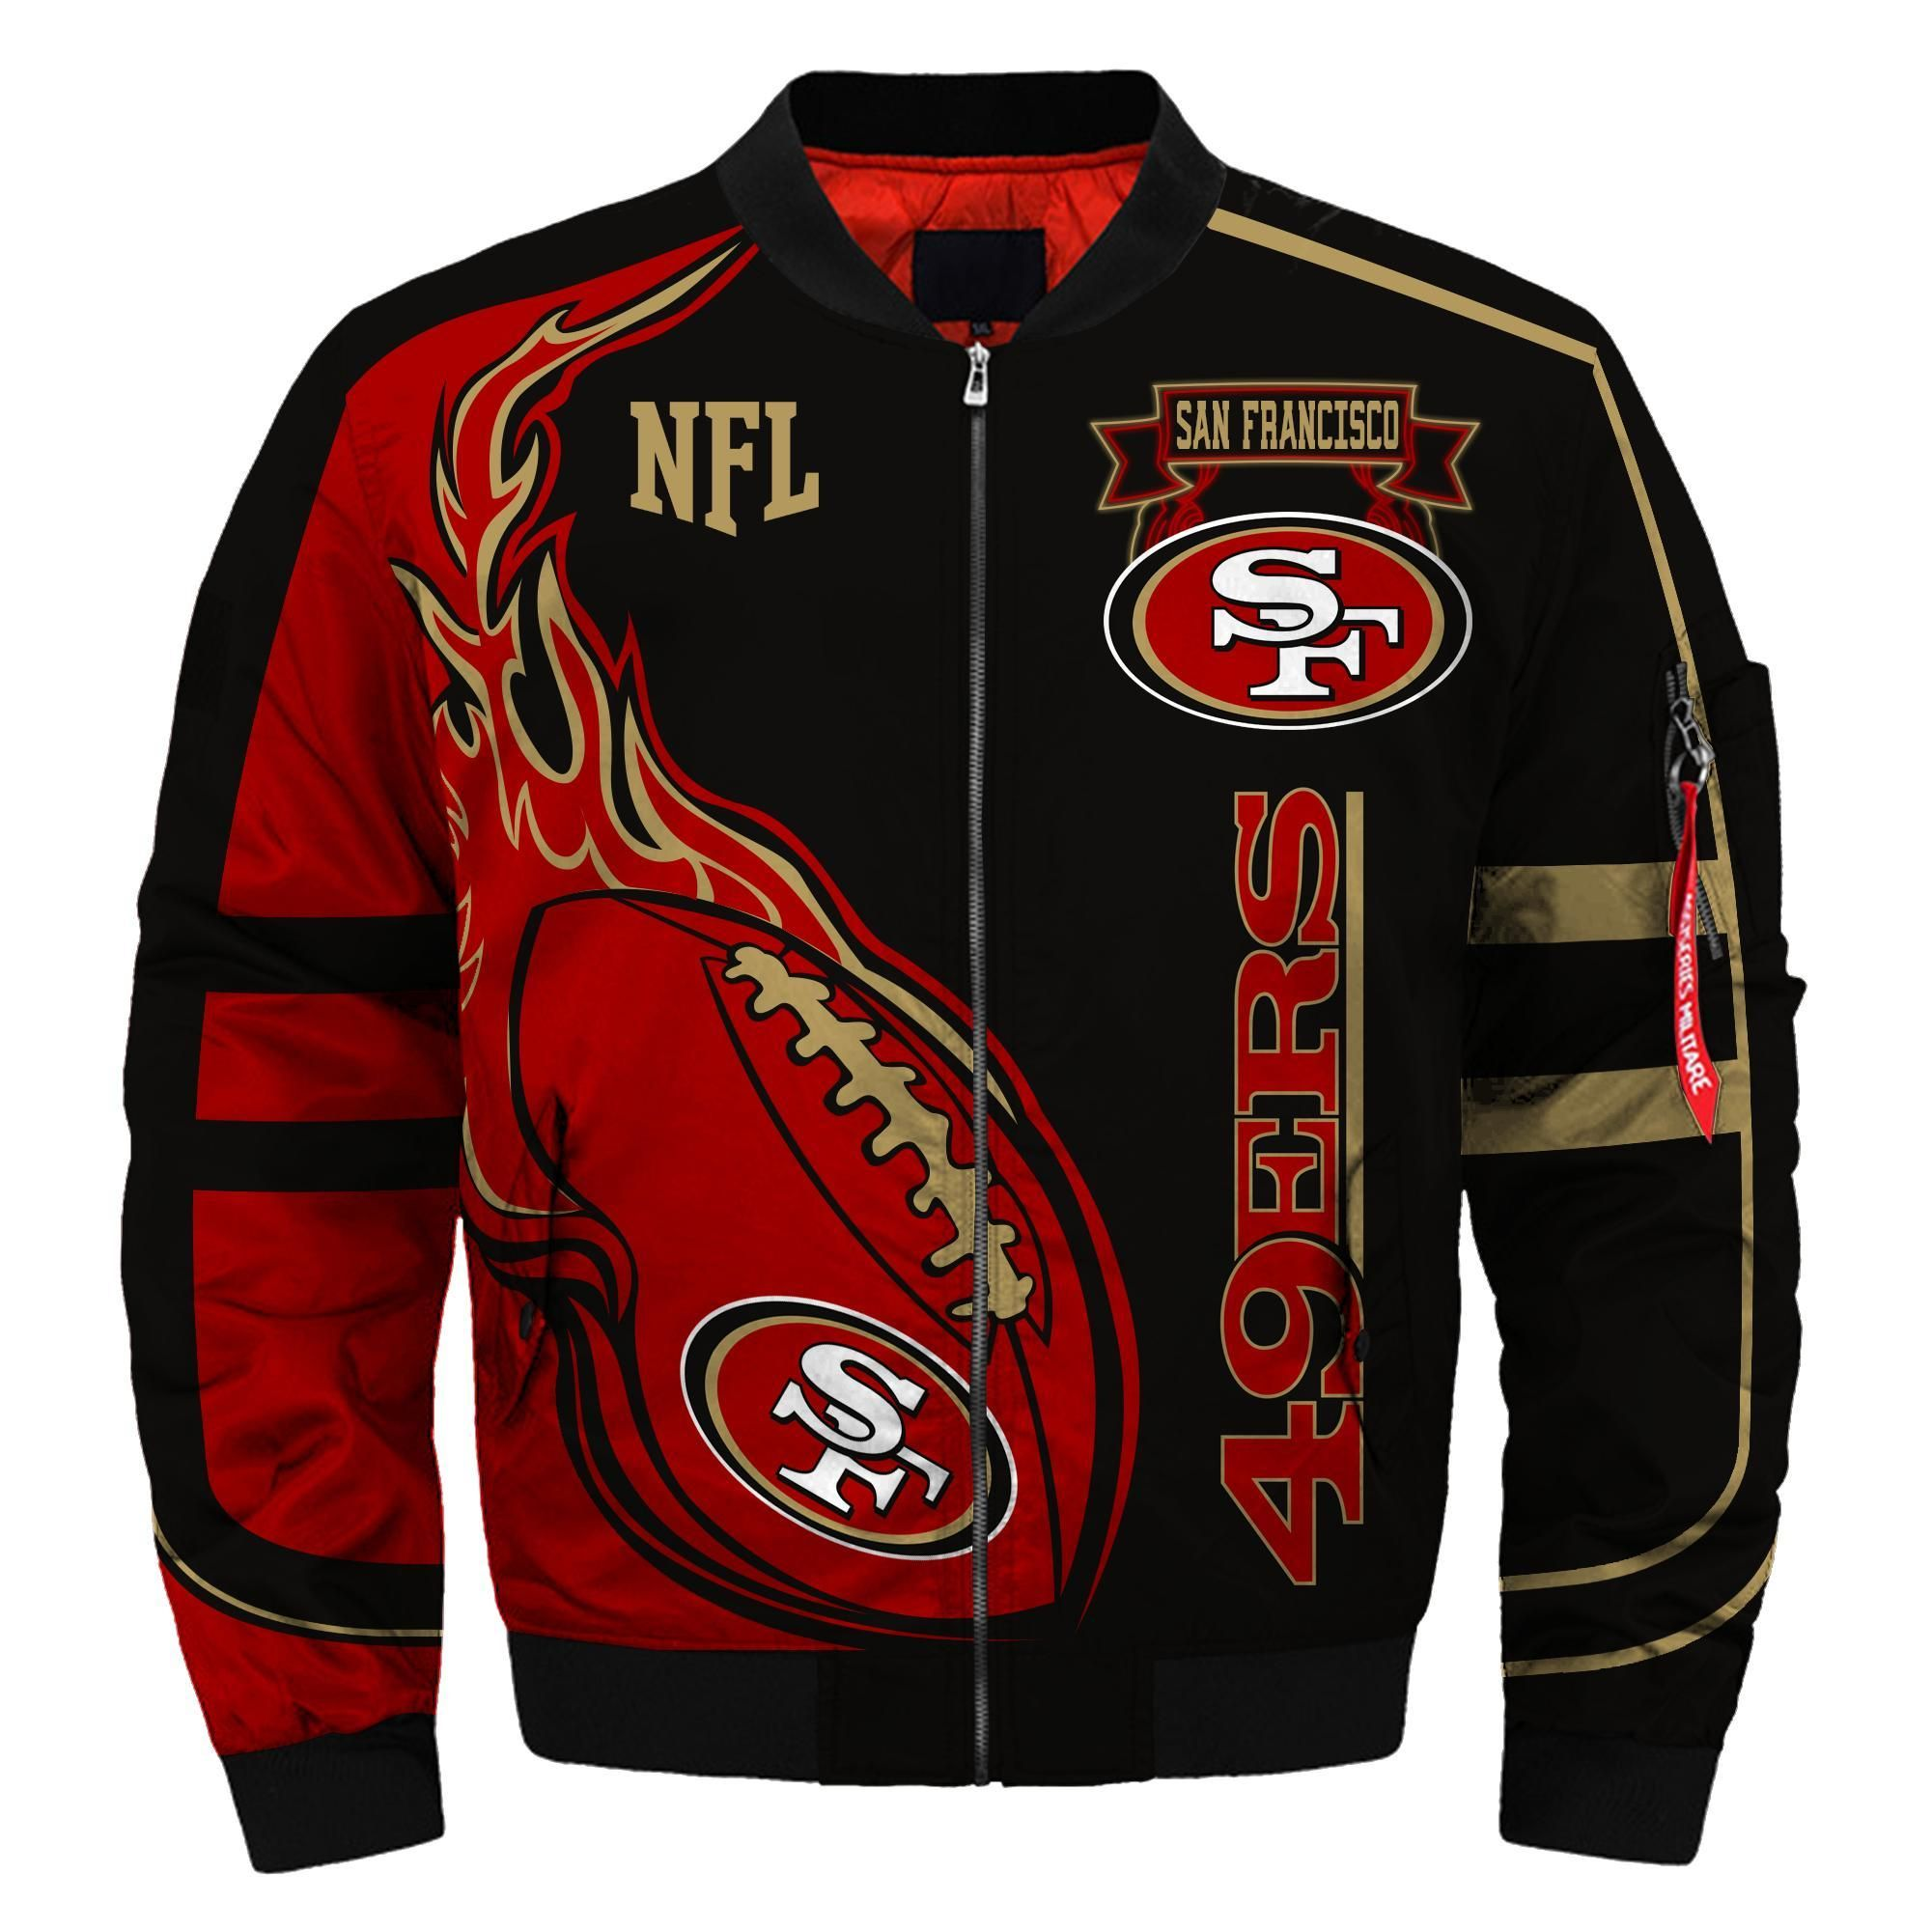 Home Lapommenyc Store 49ers Jacket San Francisco 49ers 49ers Outfit [ 2000 x 2001 Pixel ]